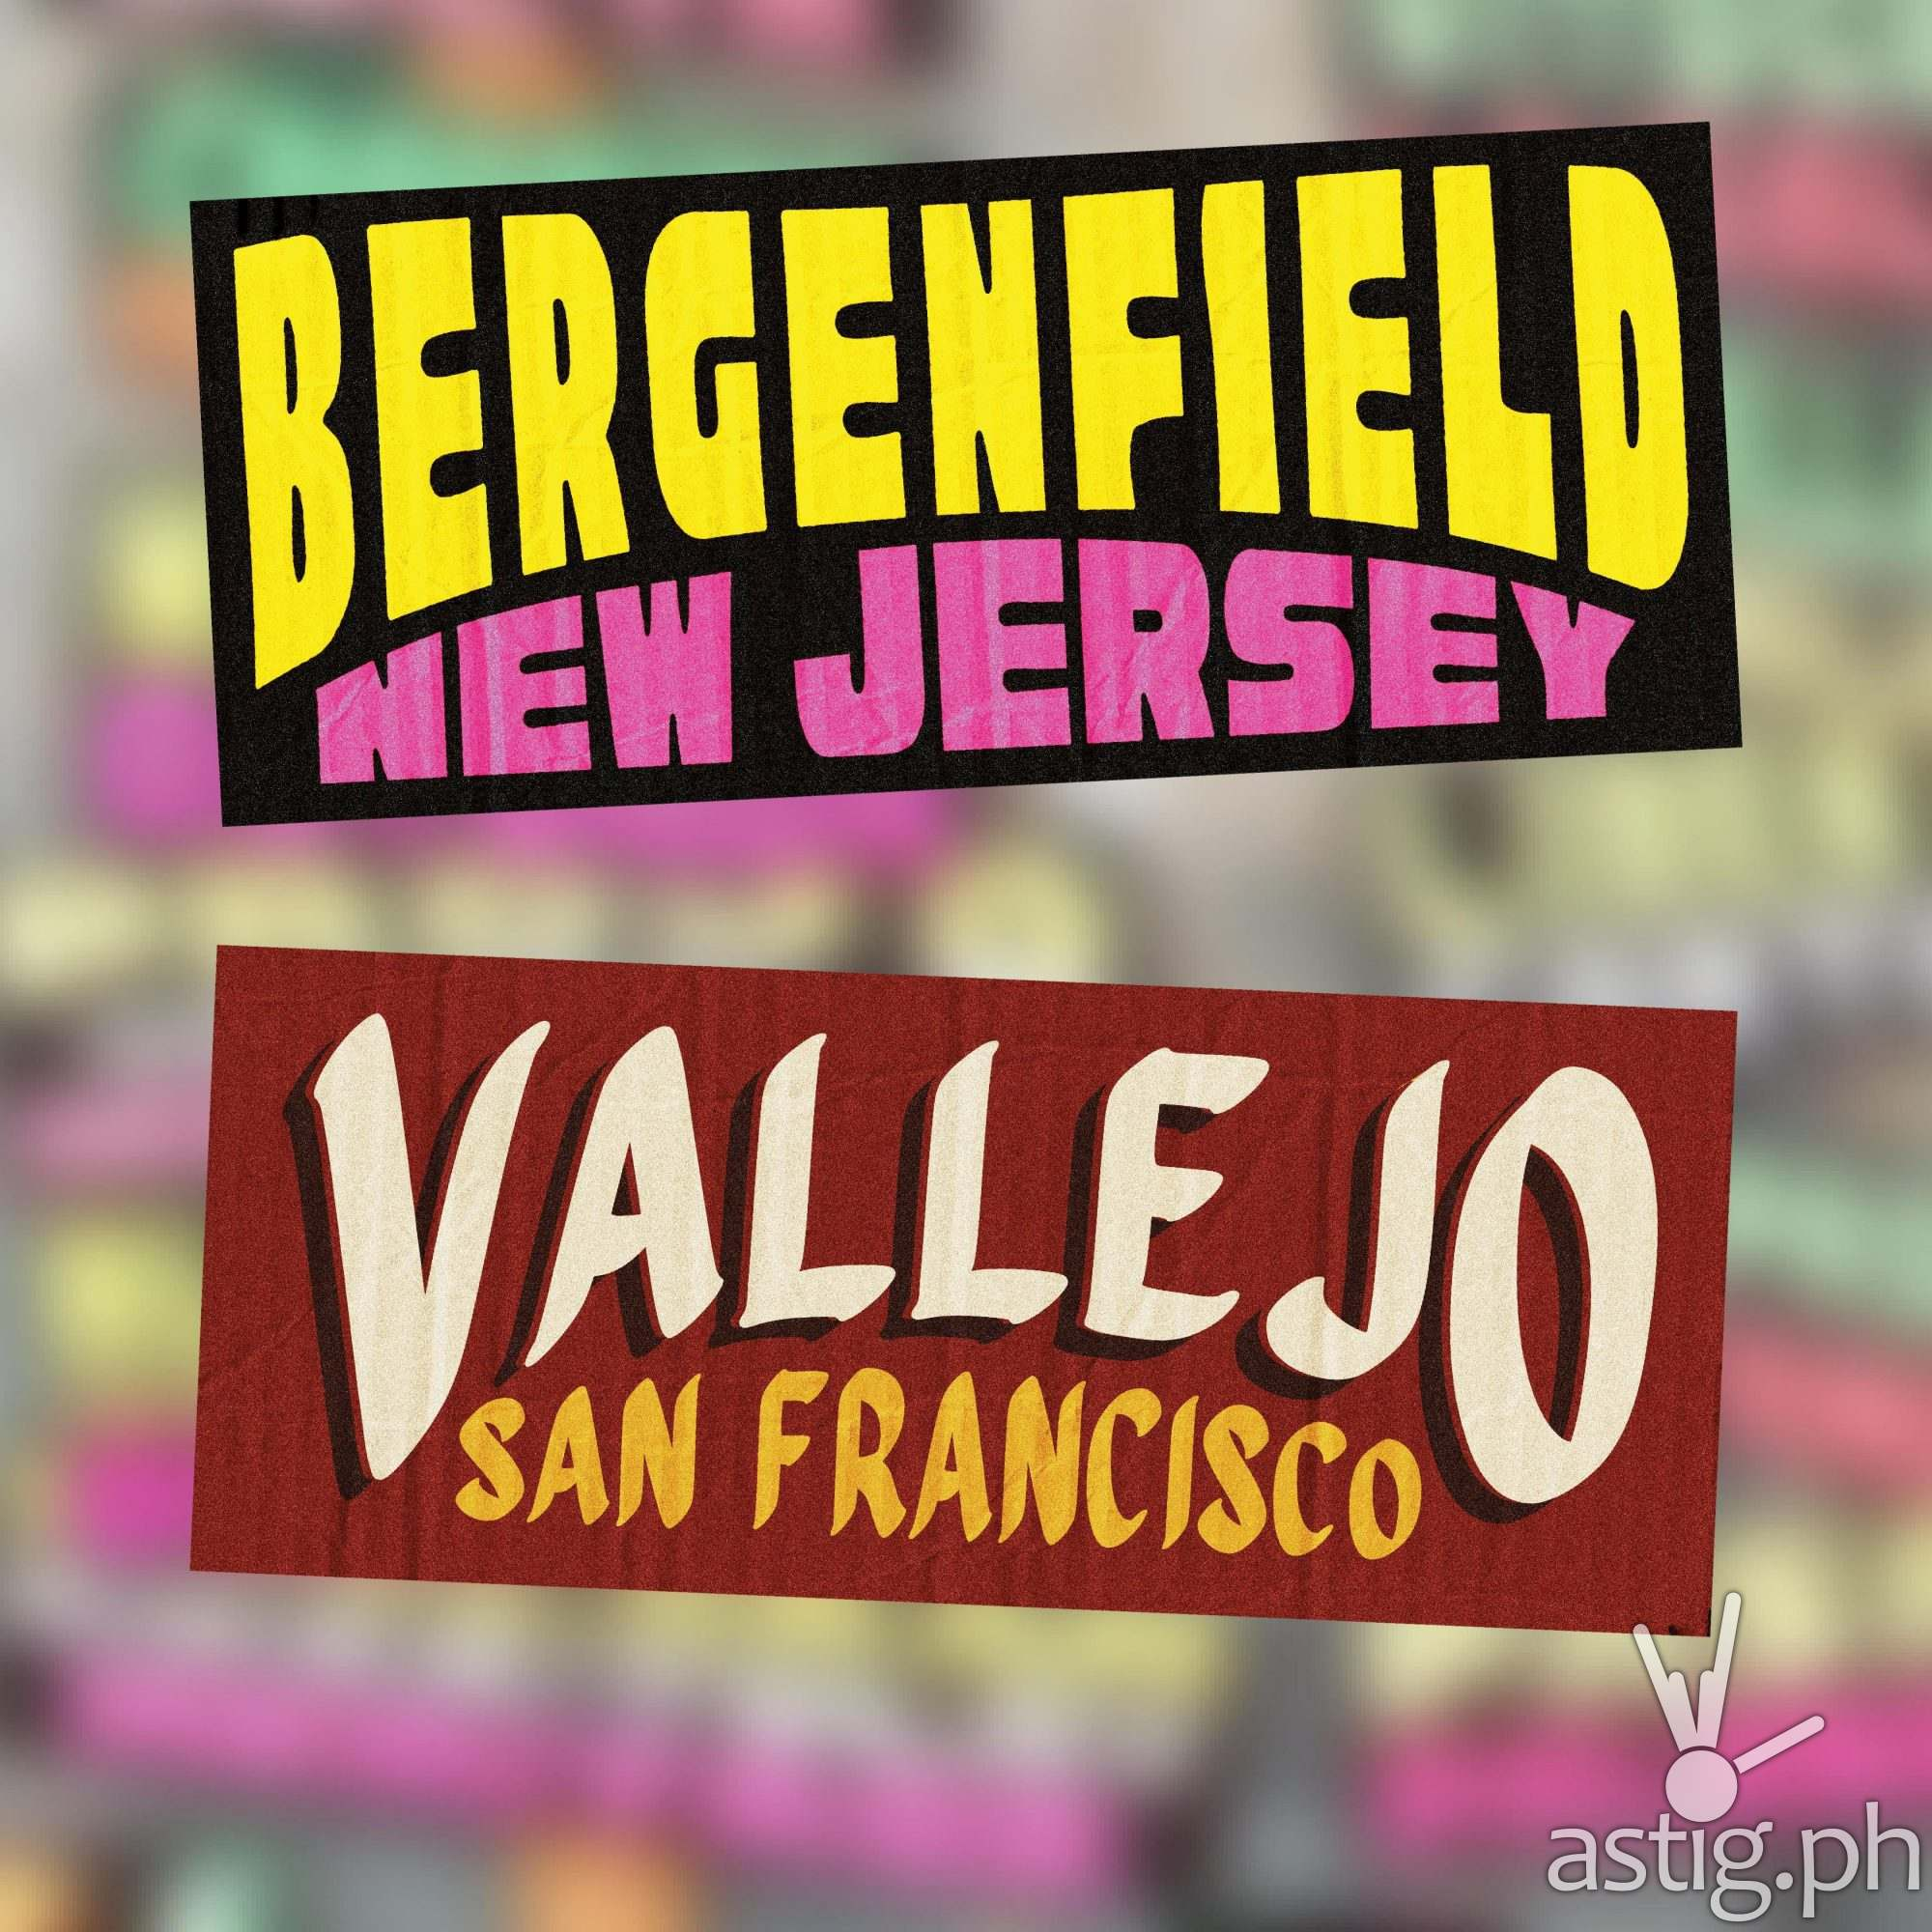 Bergenfield, New Jersey, Vallejo, San Francisco - US cities as jeepney signs from the Philippines by Zach Reyes